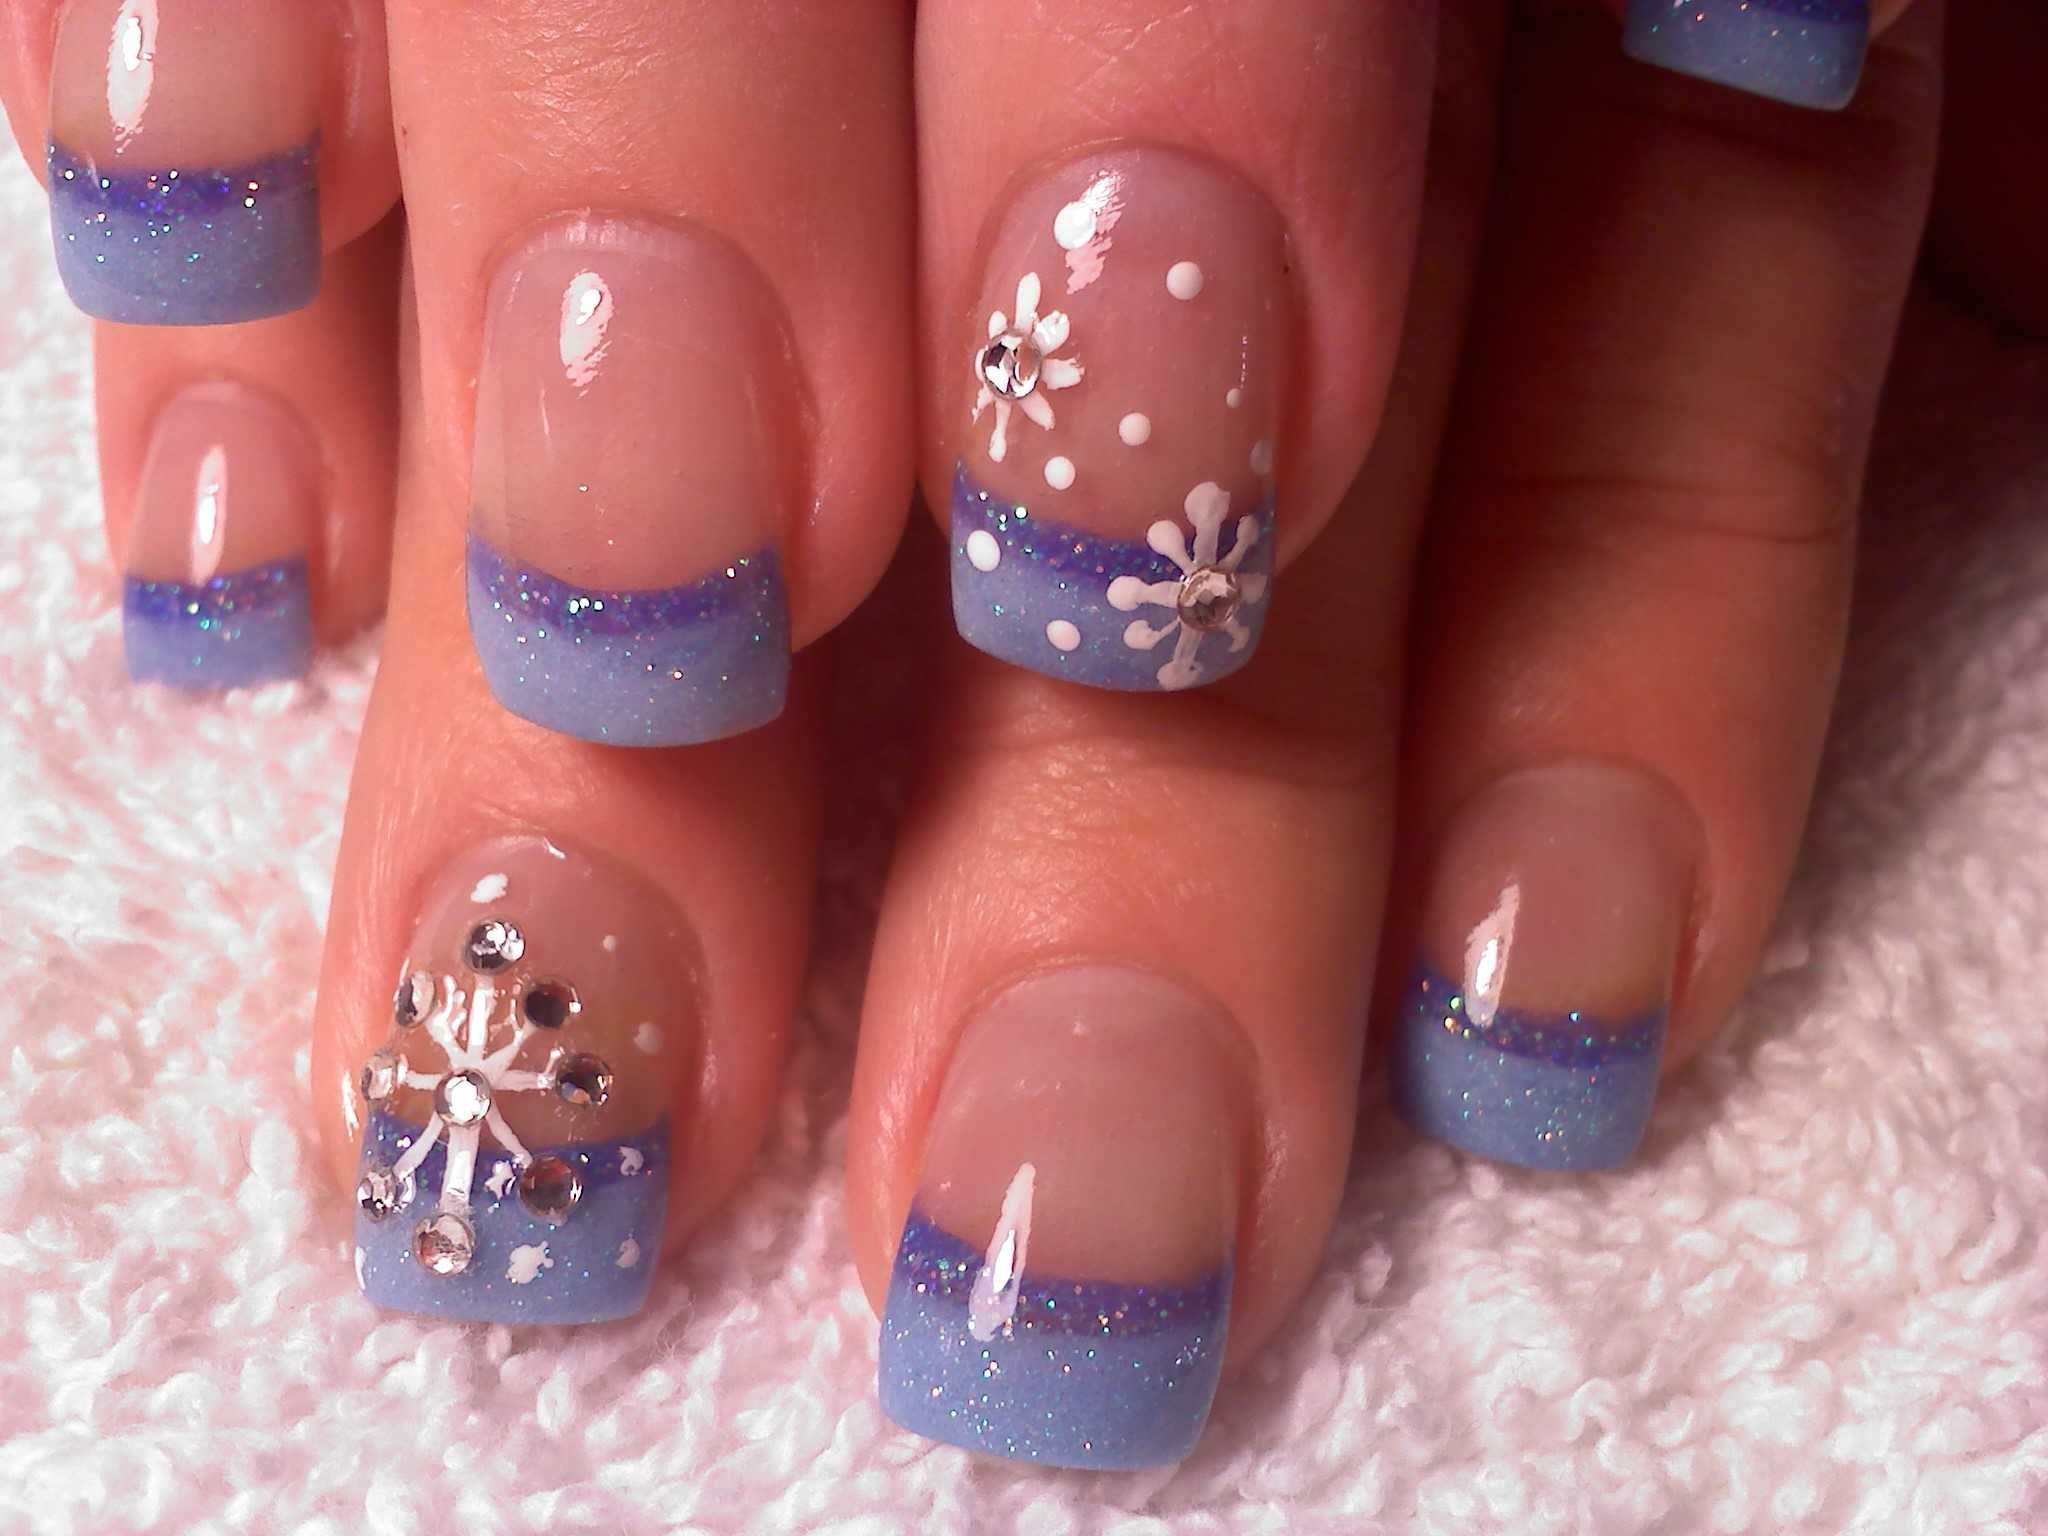 This Summer Think Winter Nagelstudio Ideen French Nagel Weihnachten French Nails